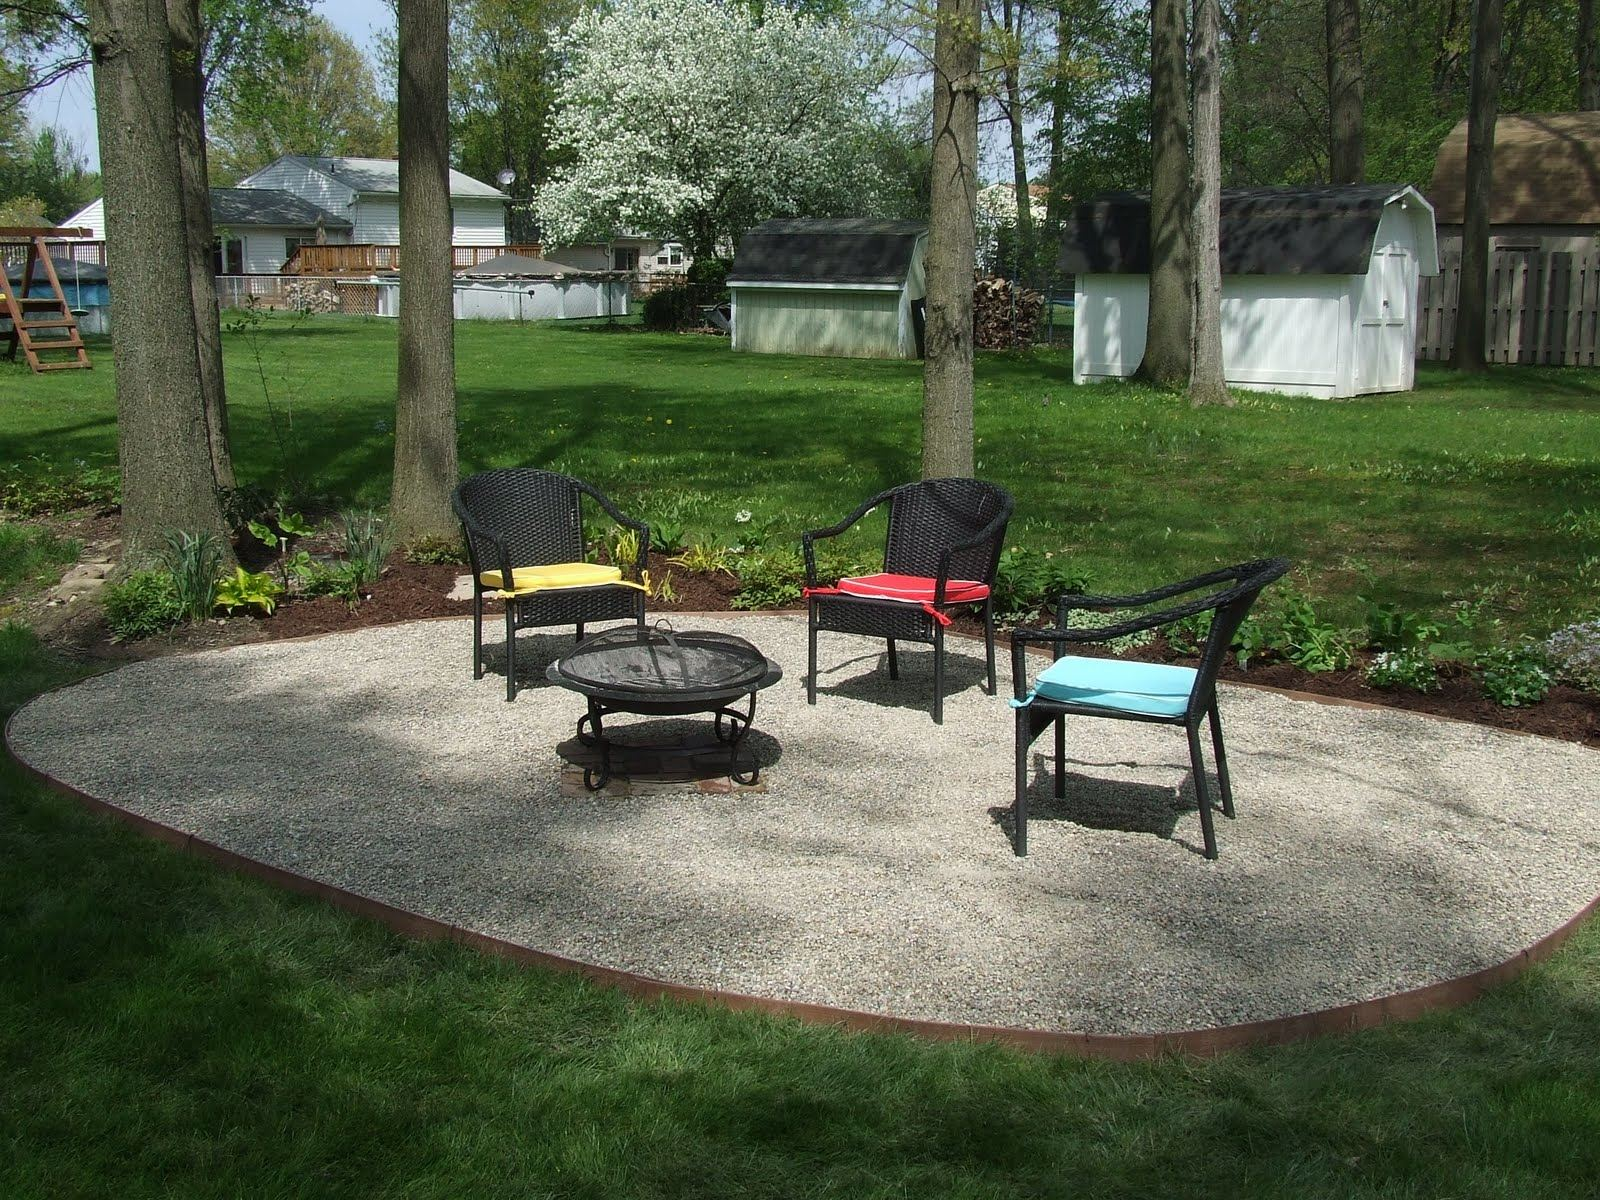 gravel patio ideas pea gravel patio ideas backyard gravel patio ideas gravel backyard my backyard tour